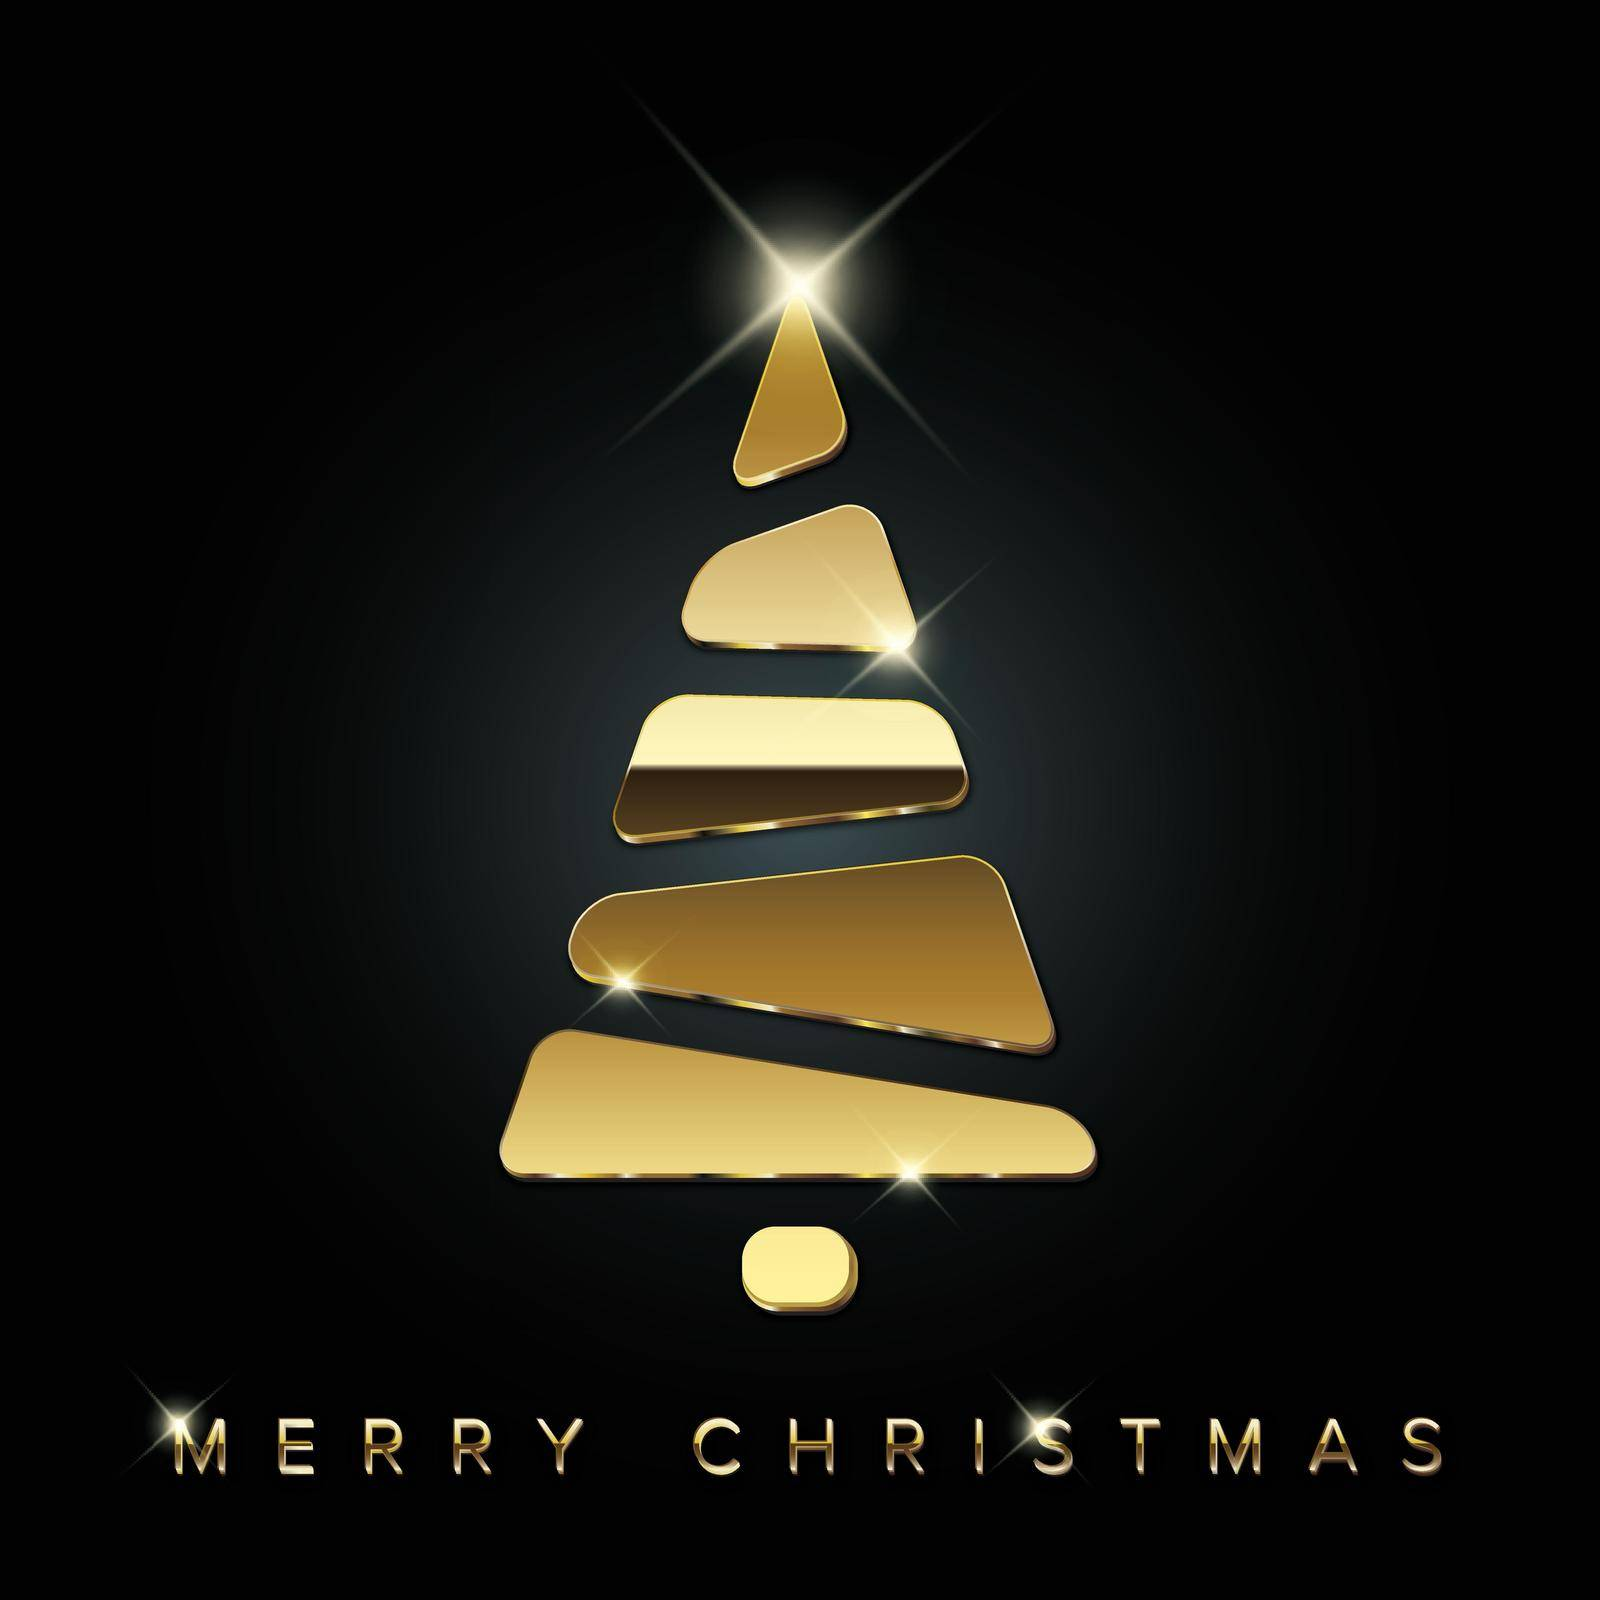 Simple vector christmas card with abstract golden christmas tree made from blocks - original new year card